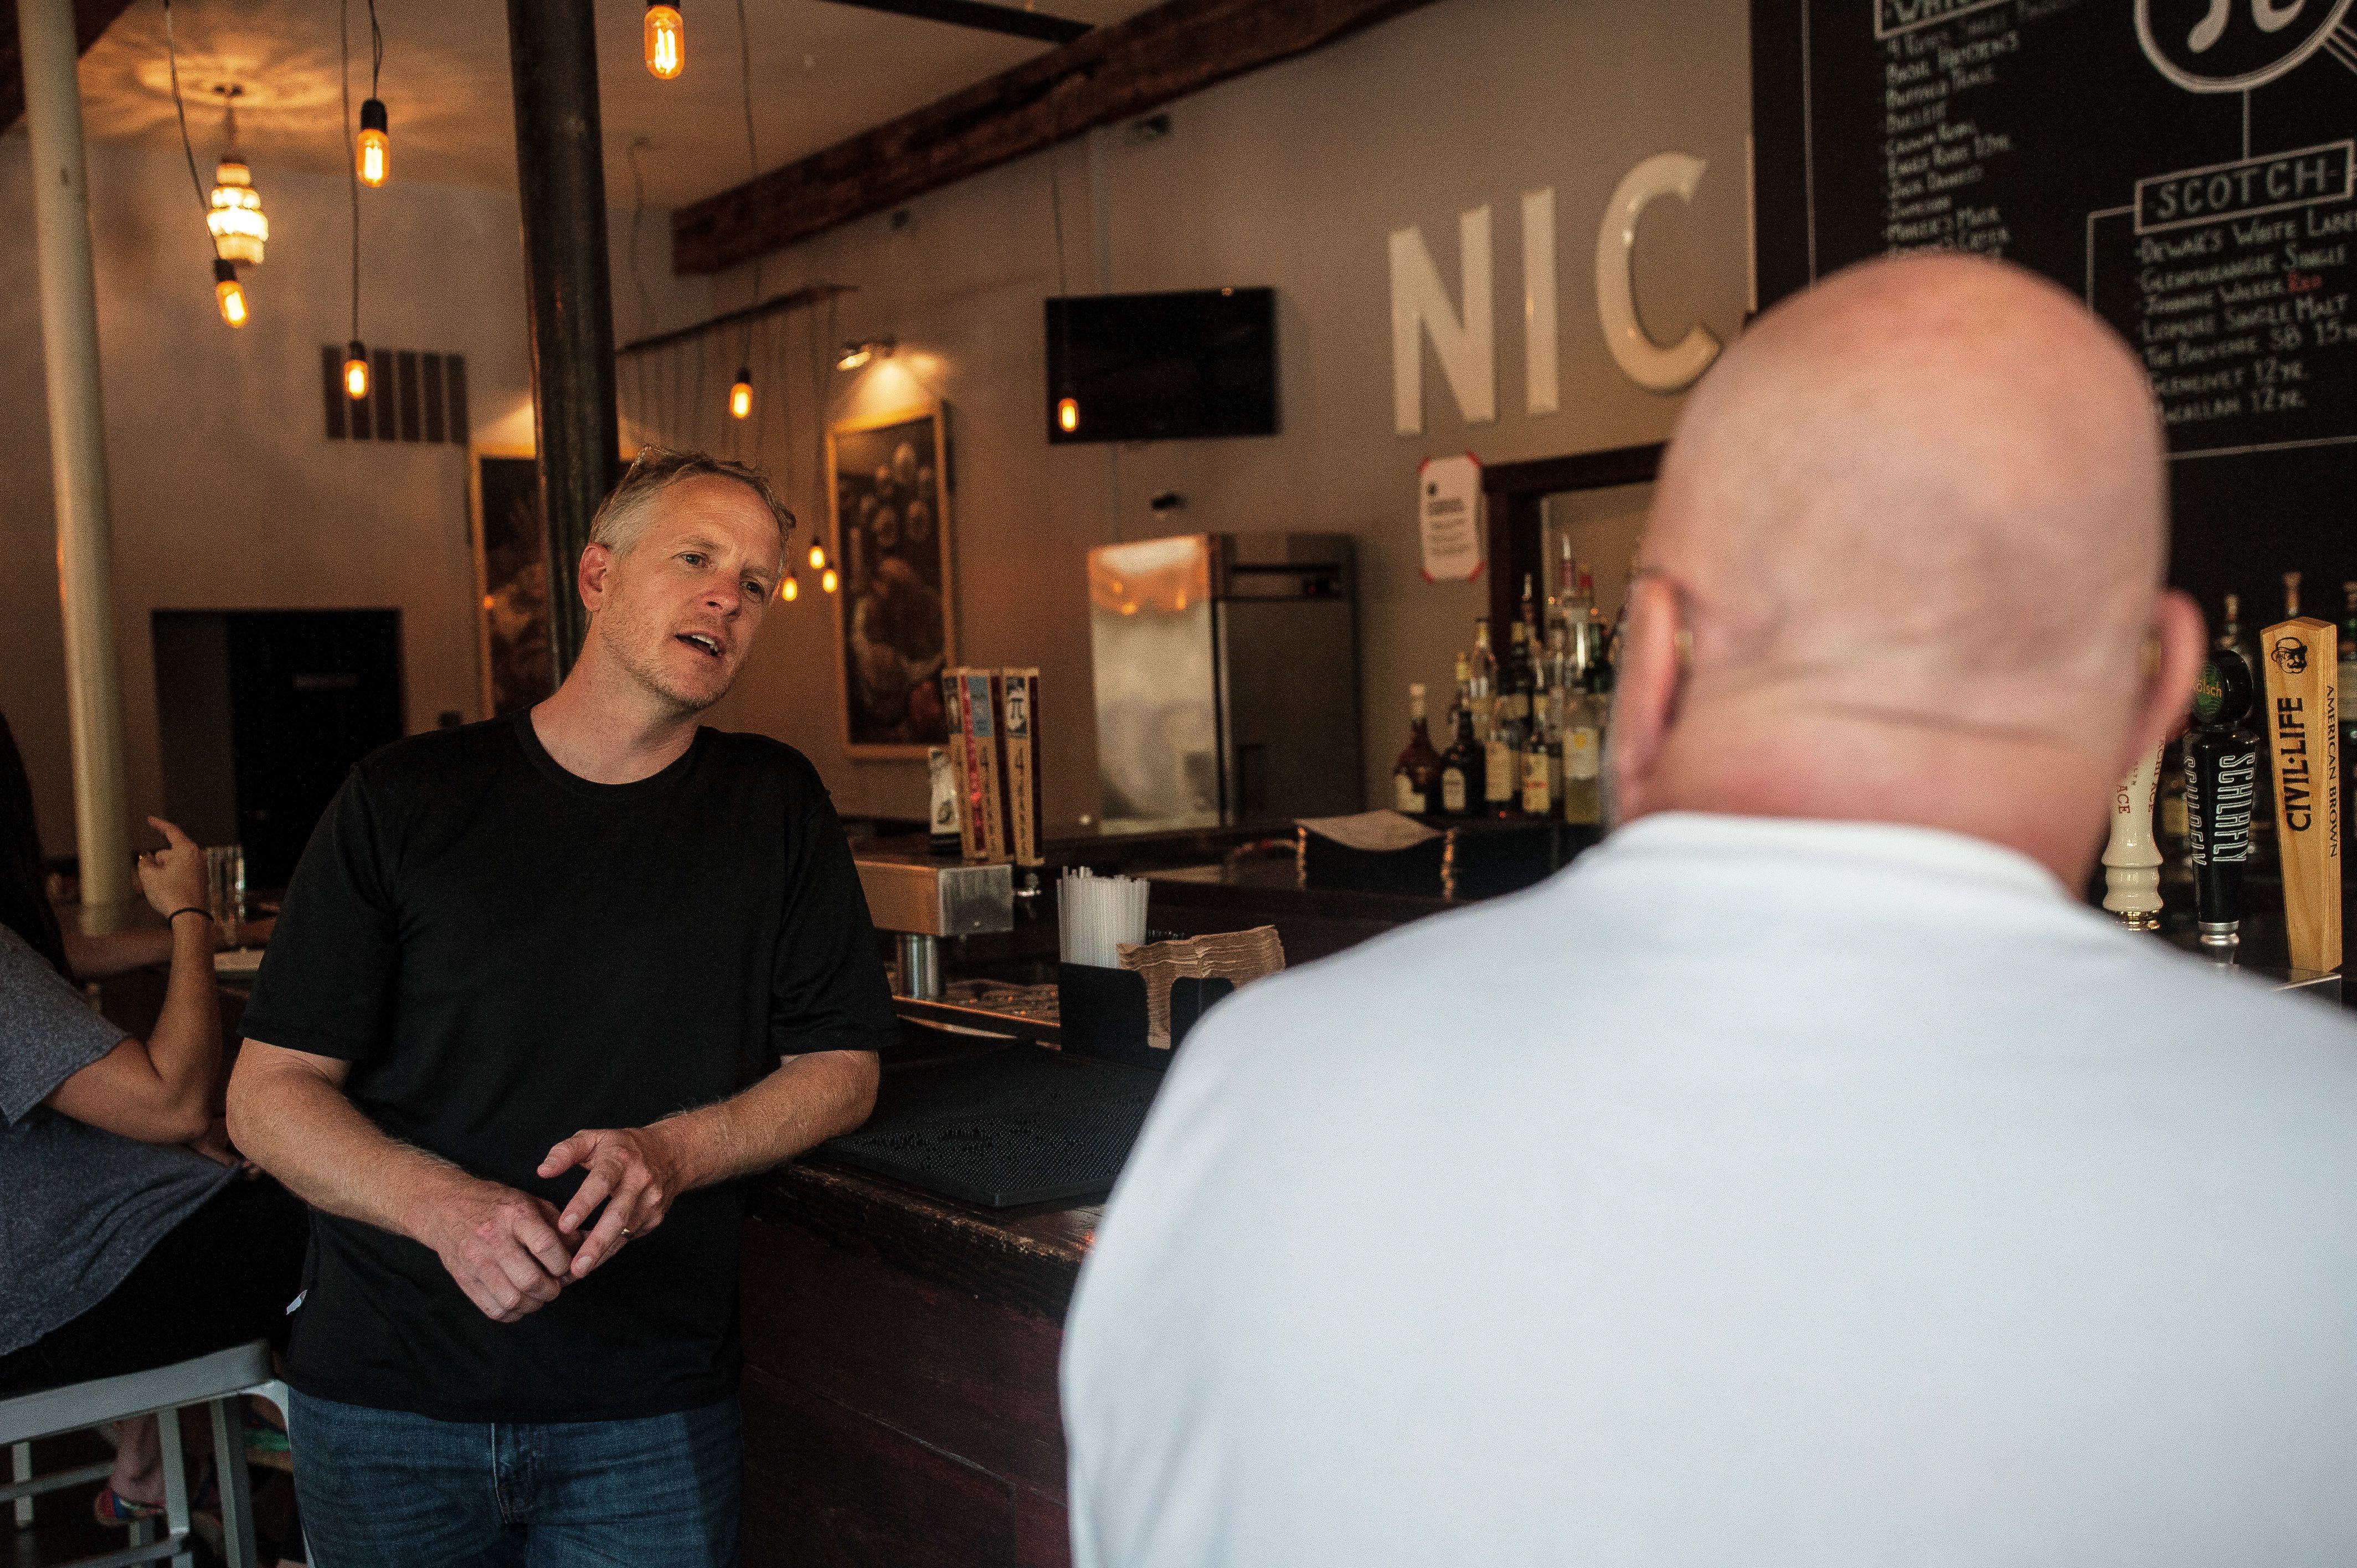 Chris Sommers, co-founder of Pi restaurants talks to supportive customers in their Central West End location in St Louis on Wednesday.